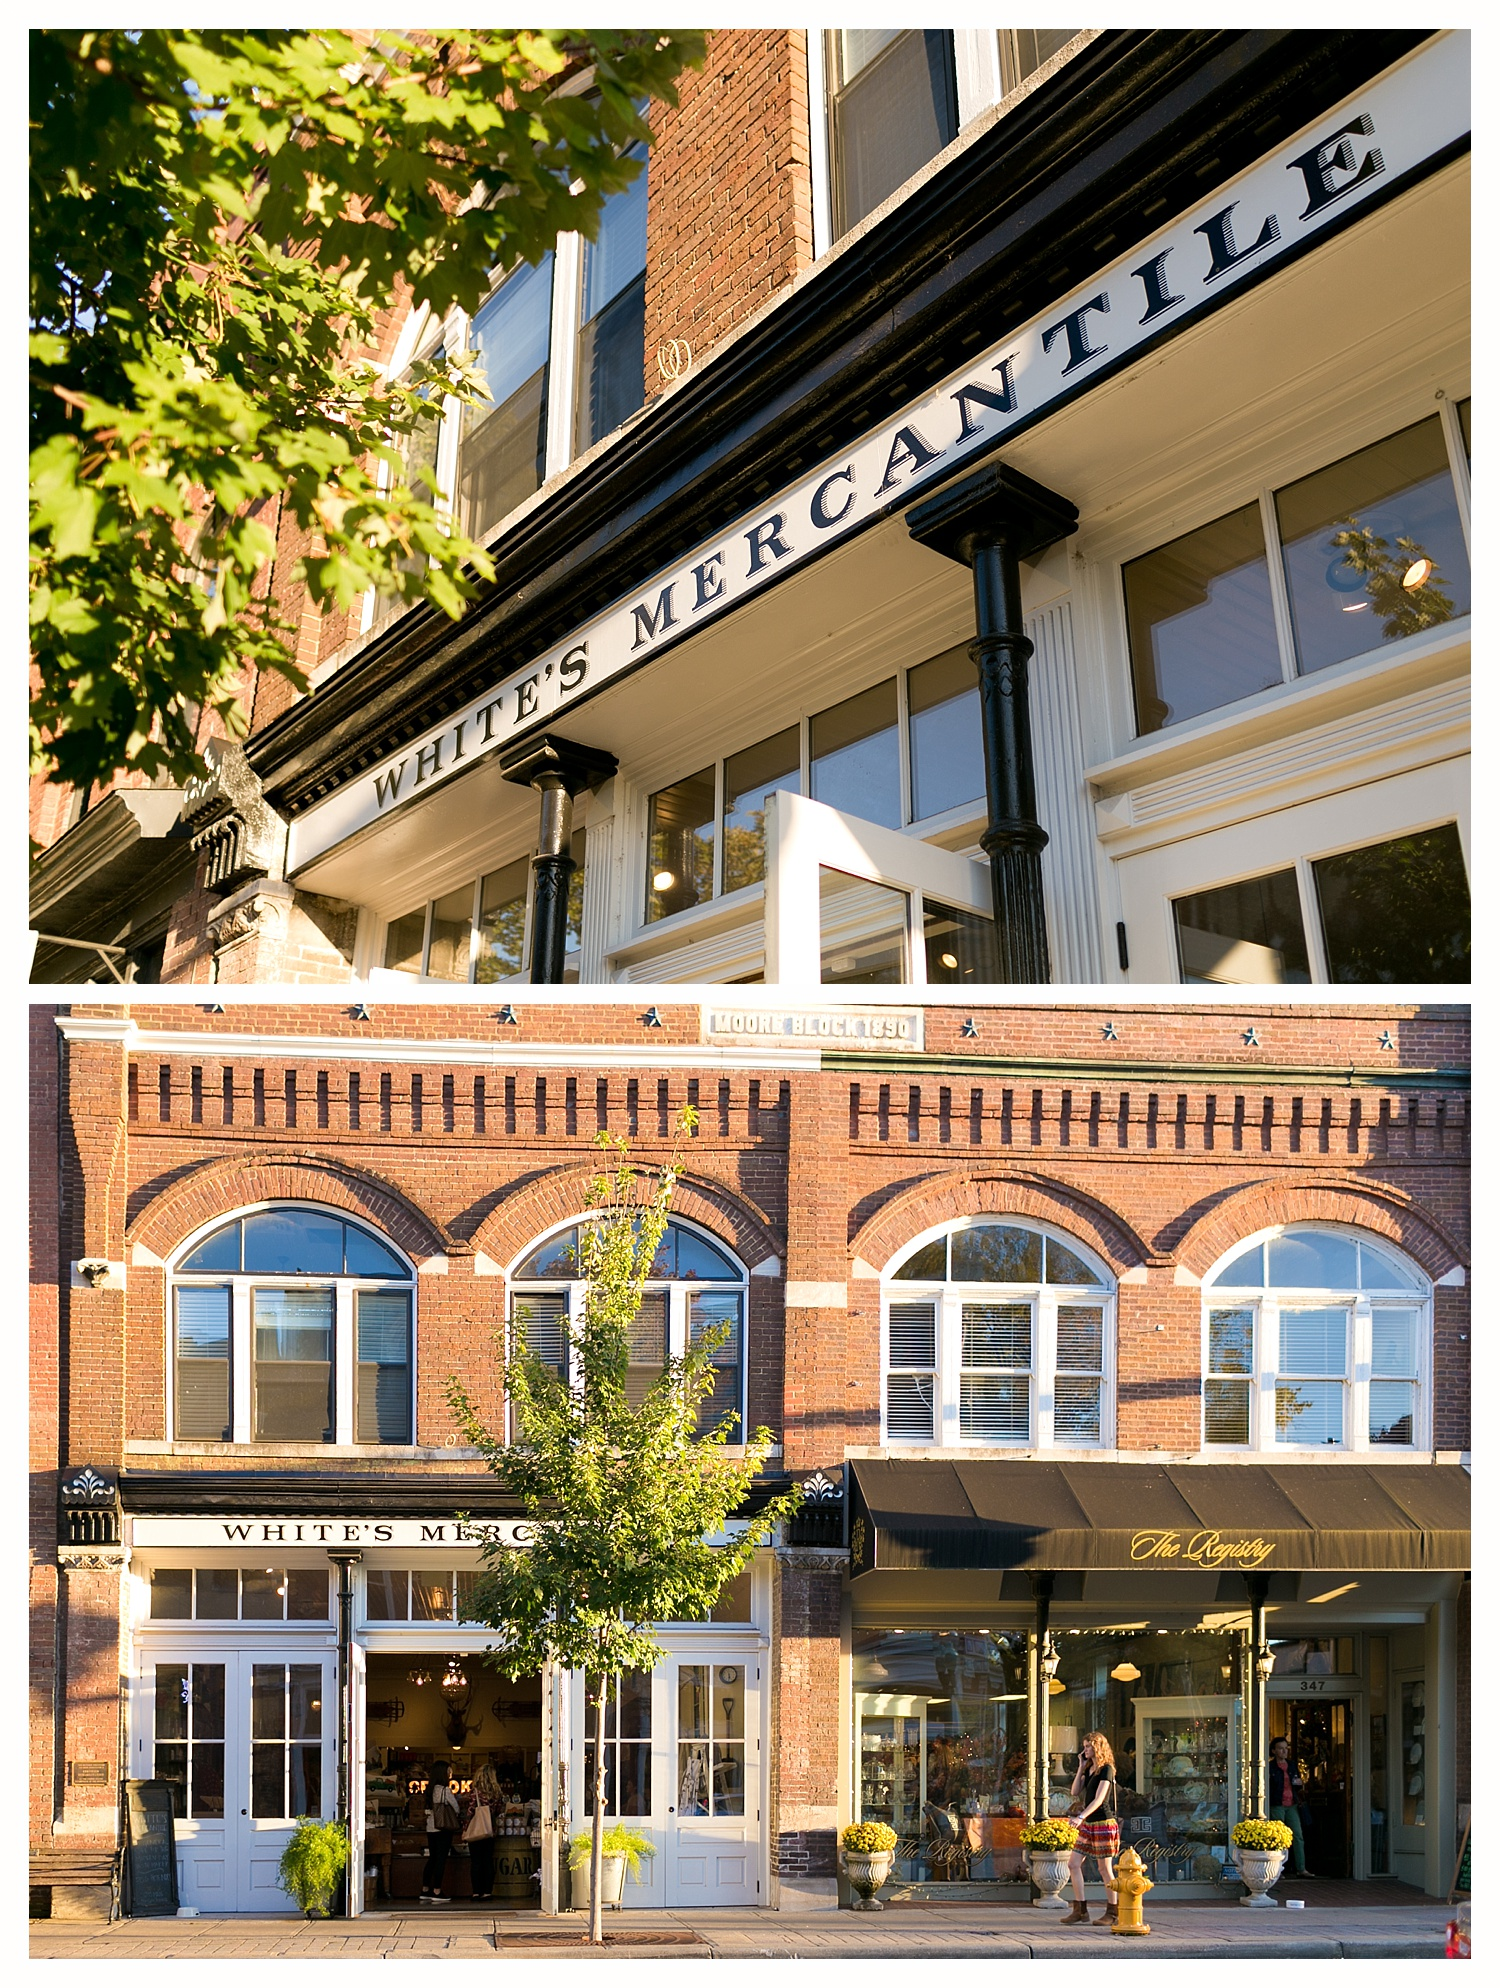 White's Mercantile in Franklin, Tennessee